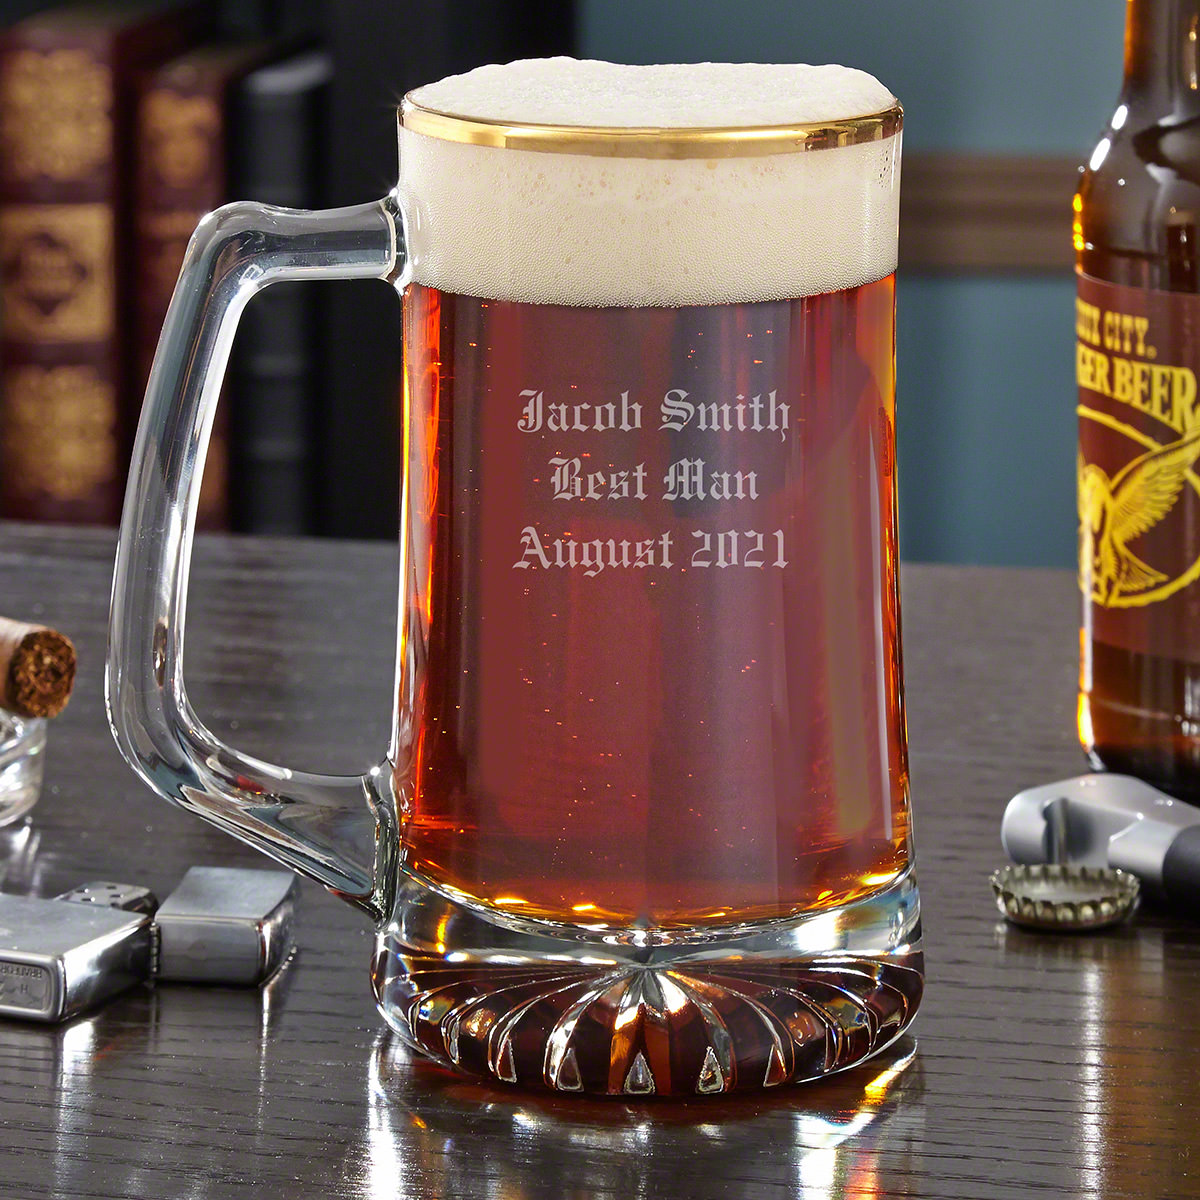 Clean-cut, good looking, and impressive...yes, your favorite beer mug just got a little more stately. Crafted from premium, high quality glass with a sophisticated gold rim, this classic personalized beer glass holds an impressive 25oz of your favorite br #mug